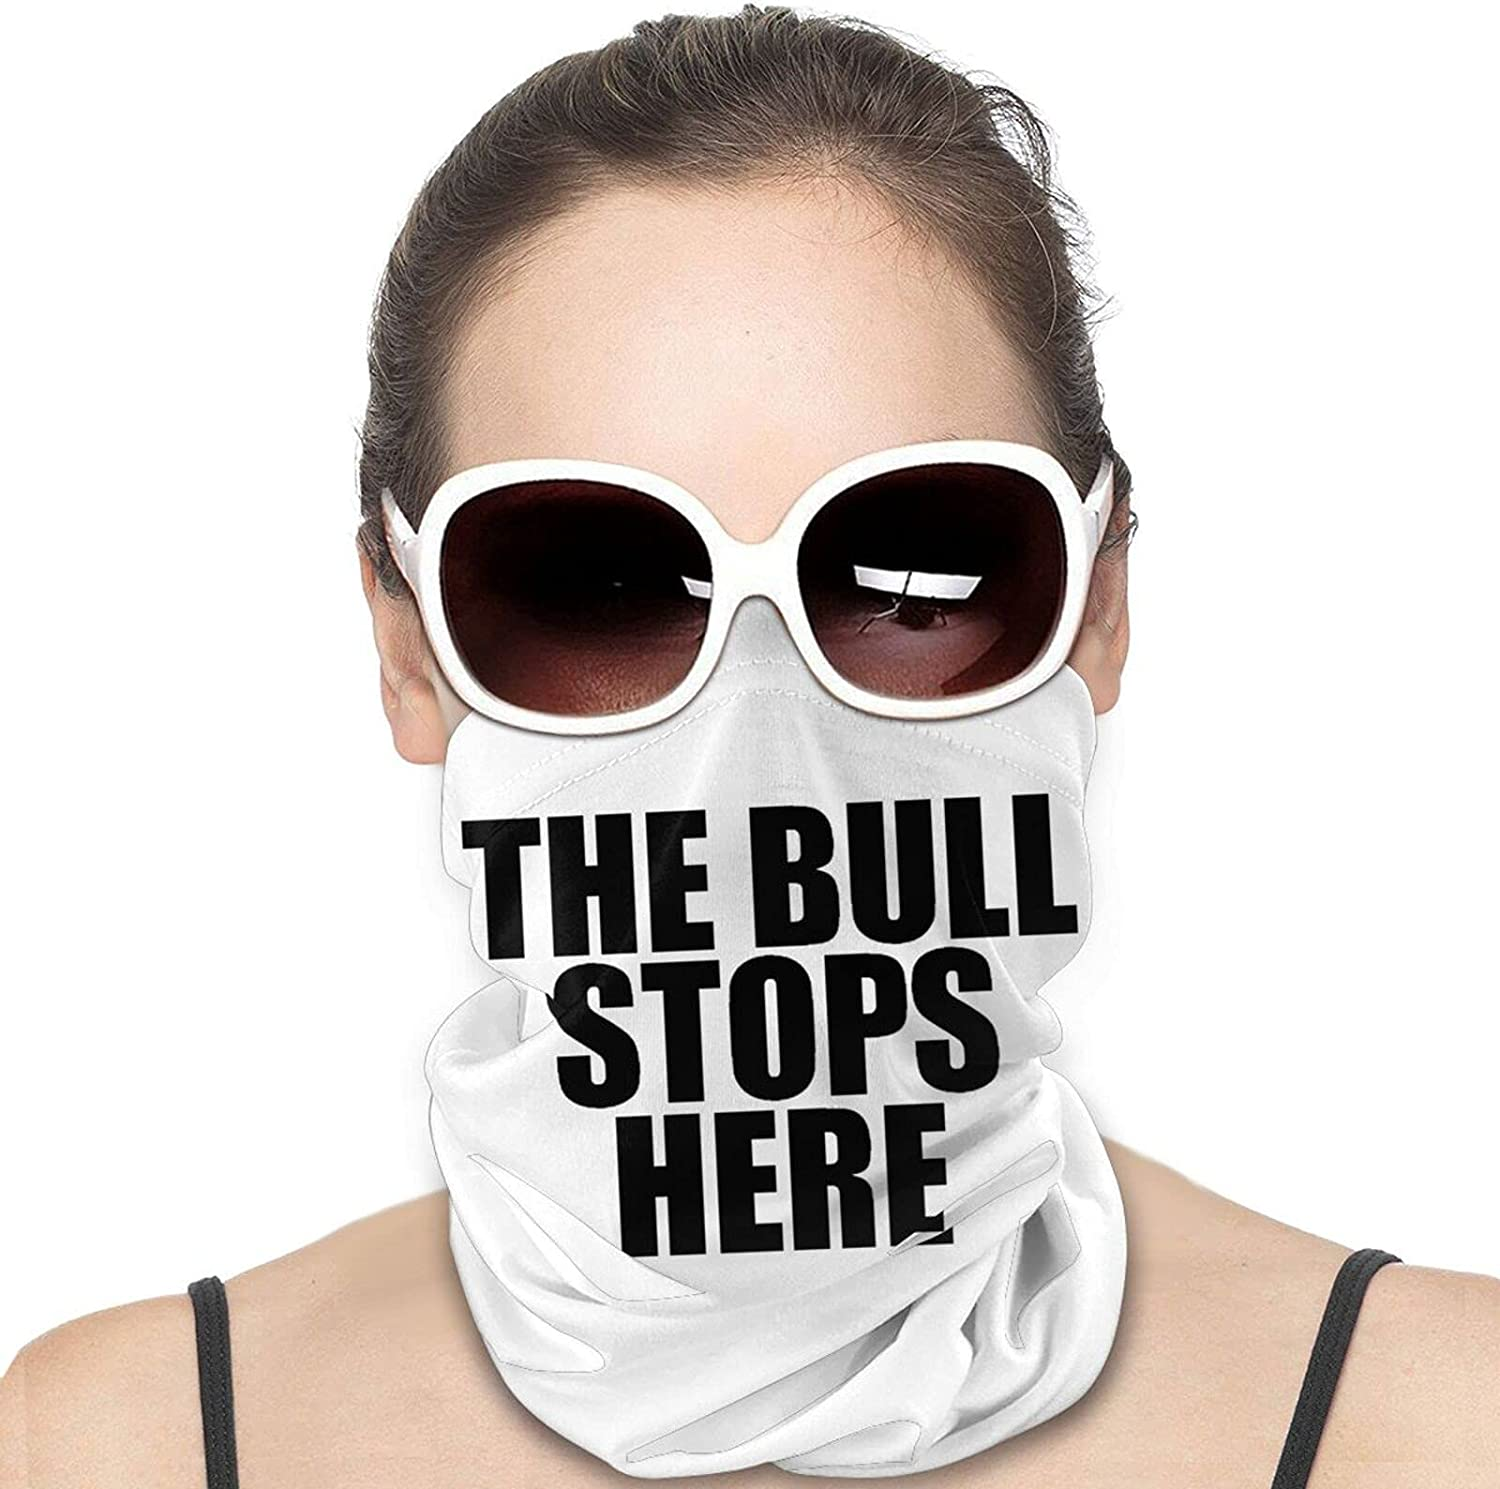 The Bull Stops Here Round Neck Gaiter Bandnas Face Cover Uv Protection Prevent bask in Ice Scarf Headbands Perfect for Motorcycle Cycling Running Festival Raves Outdoors